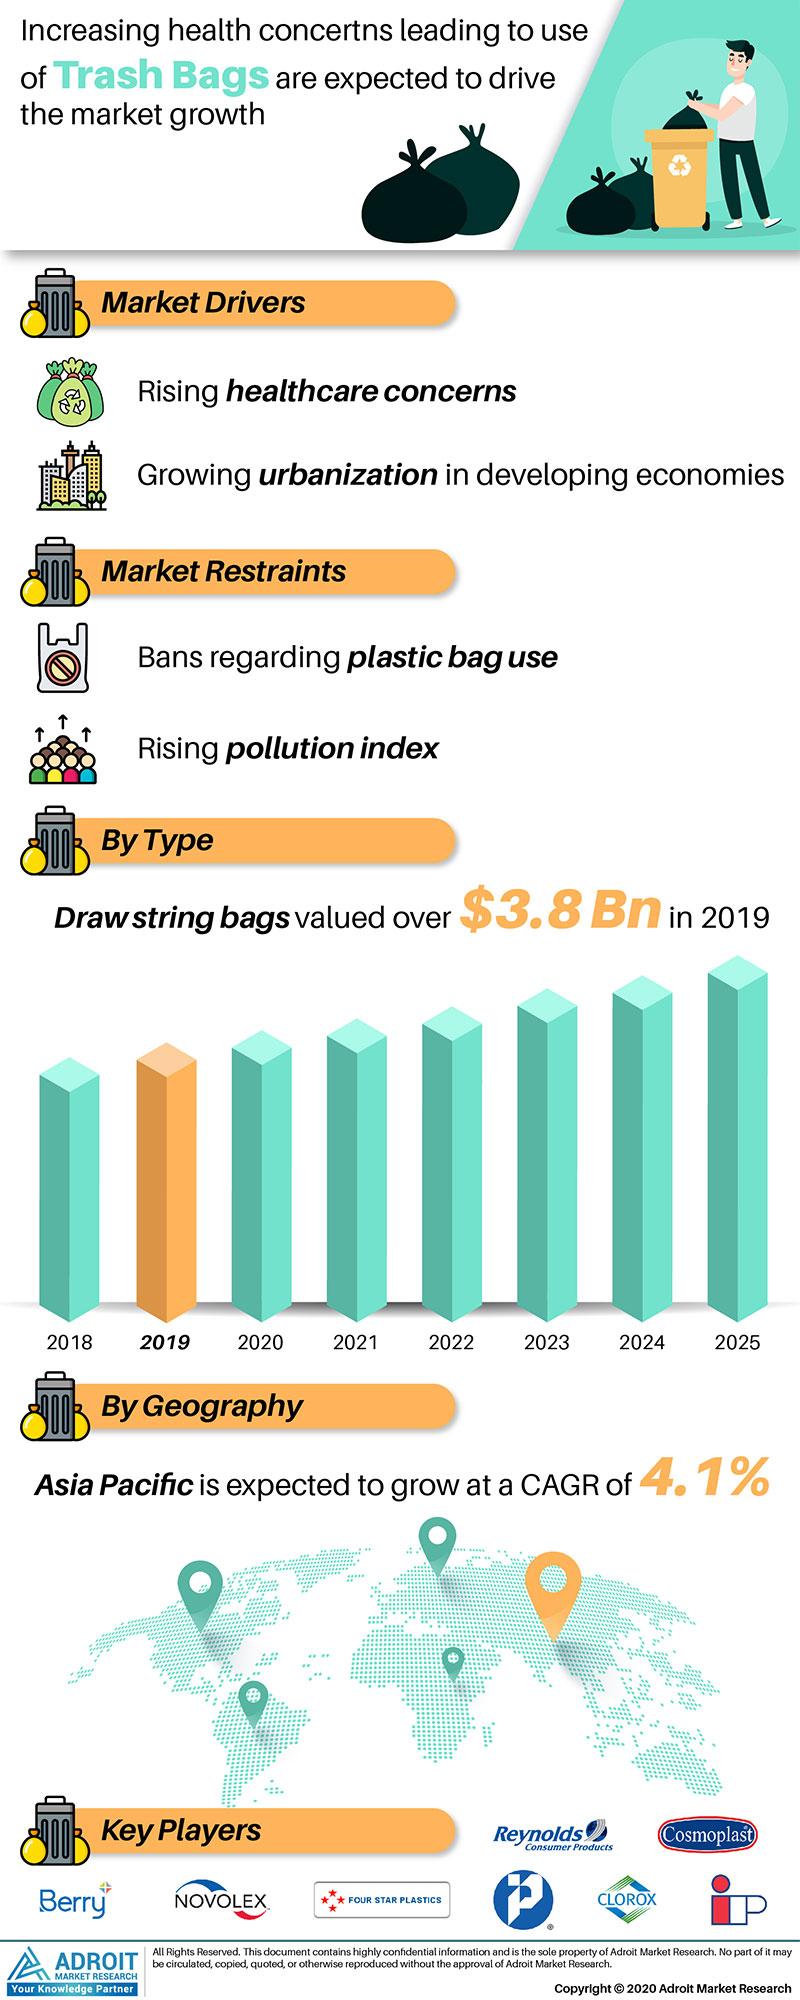 Trash Bags Market Size 2017 By Application, Product, Region and Forecast 2019 to 2025